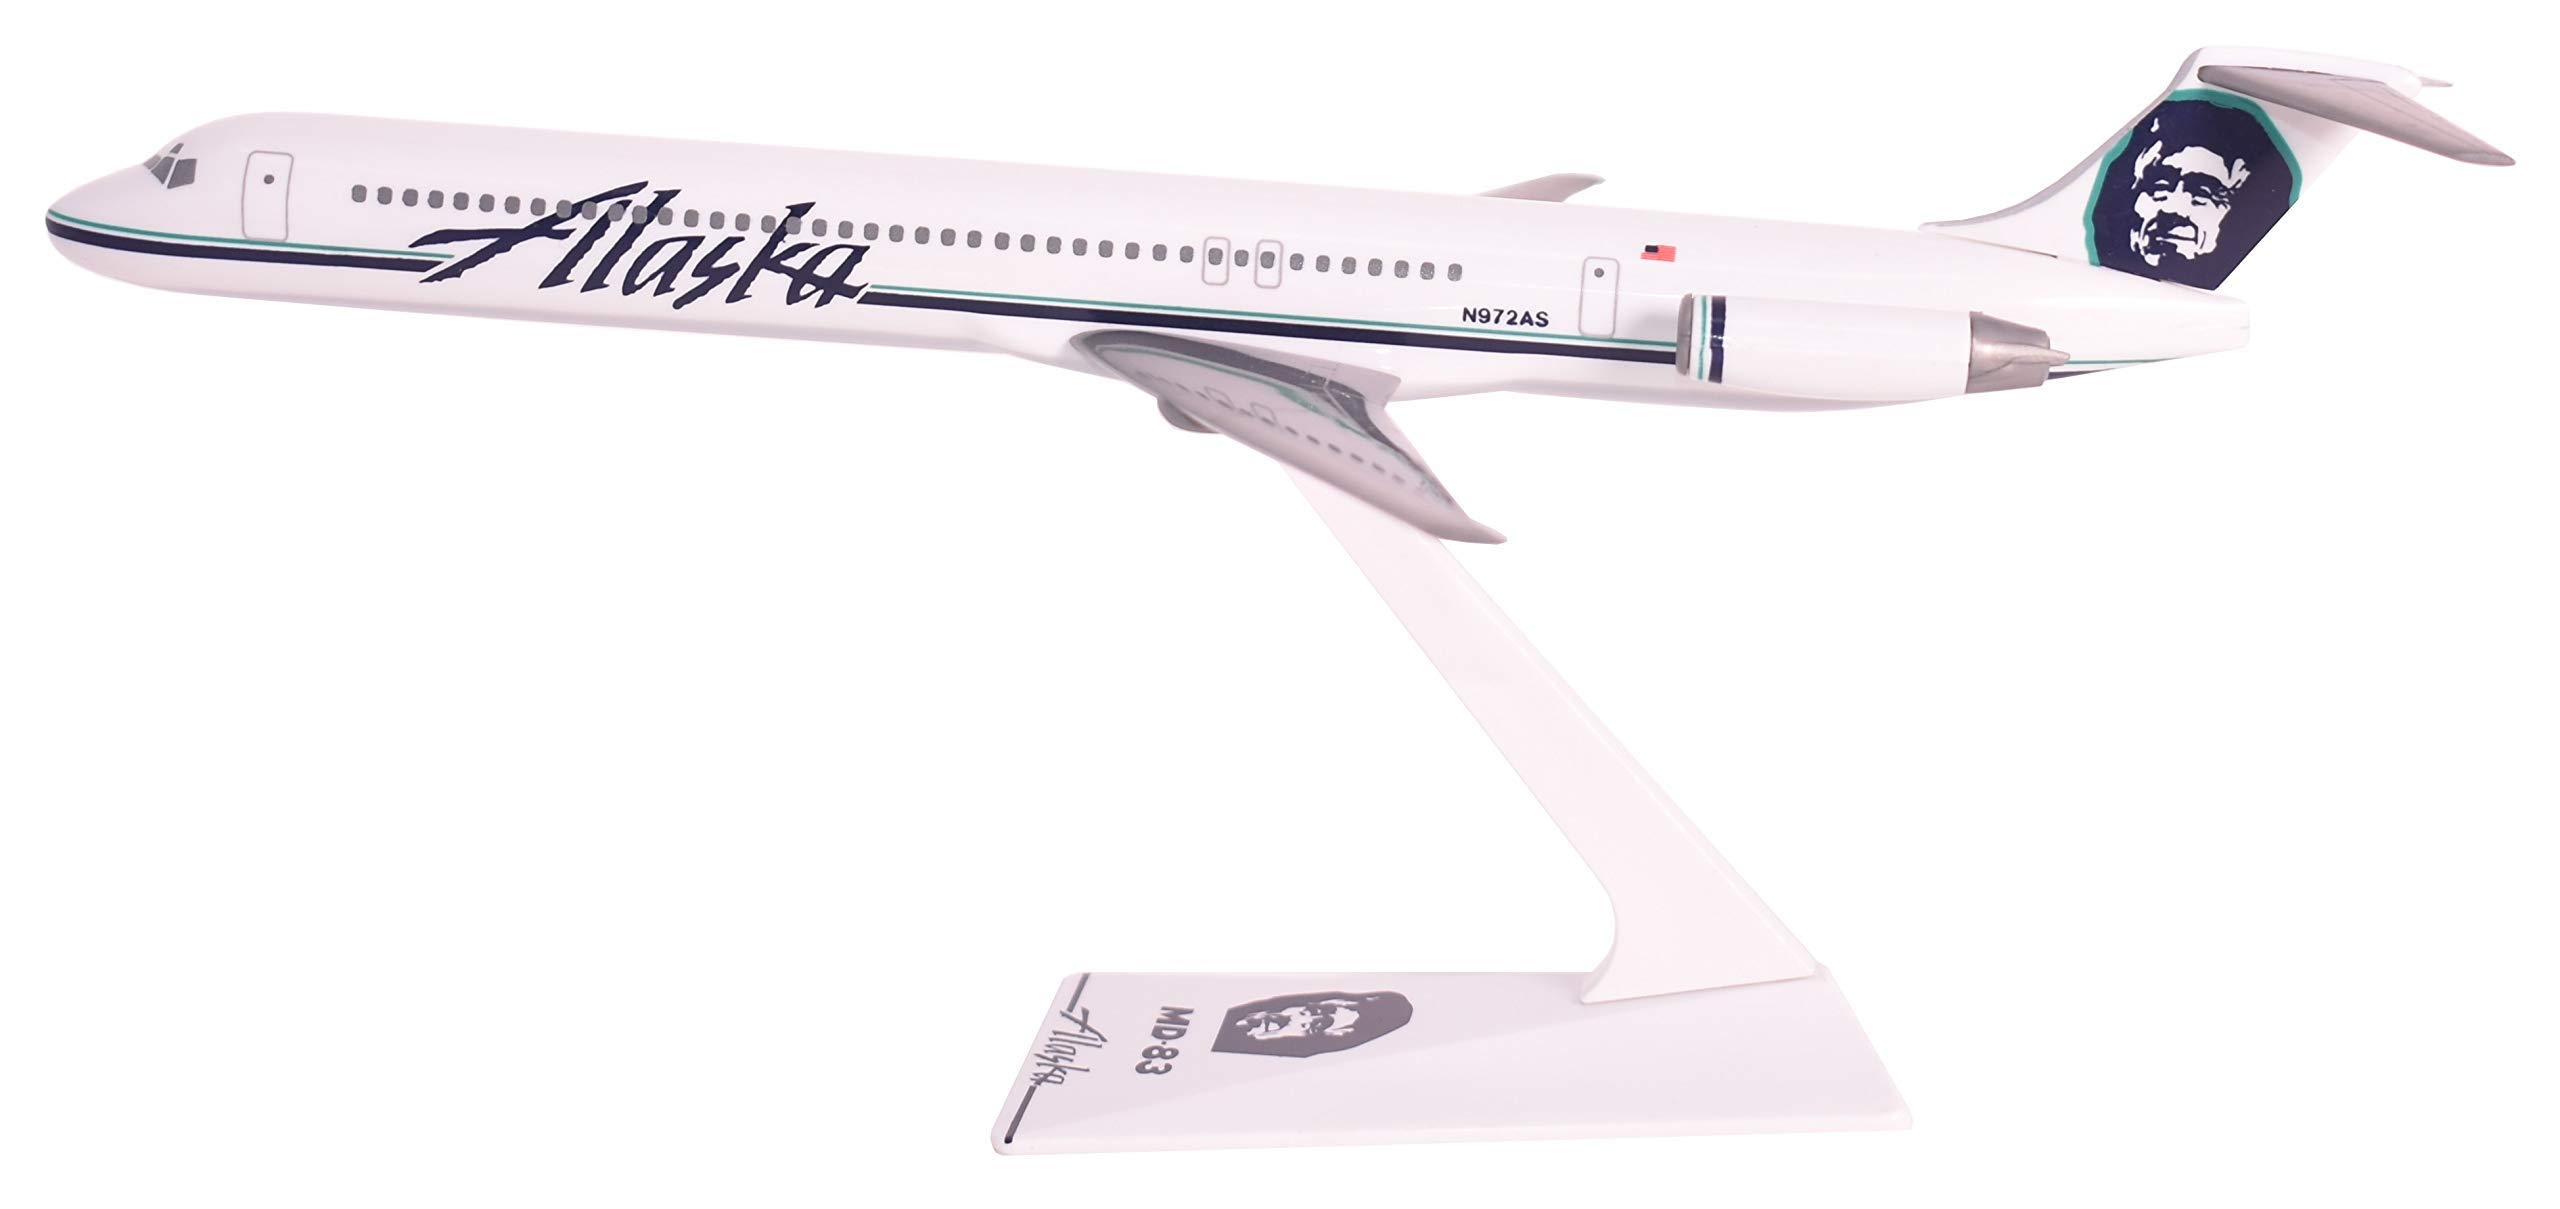 Flight Miniatures Alaska Airlines McDonnell Douglas MD-83 1:200 Scale (Renewed) by Flight Miniatures (Image #1)